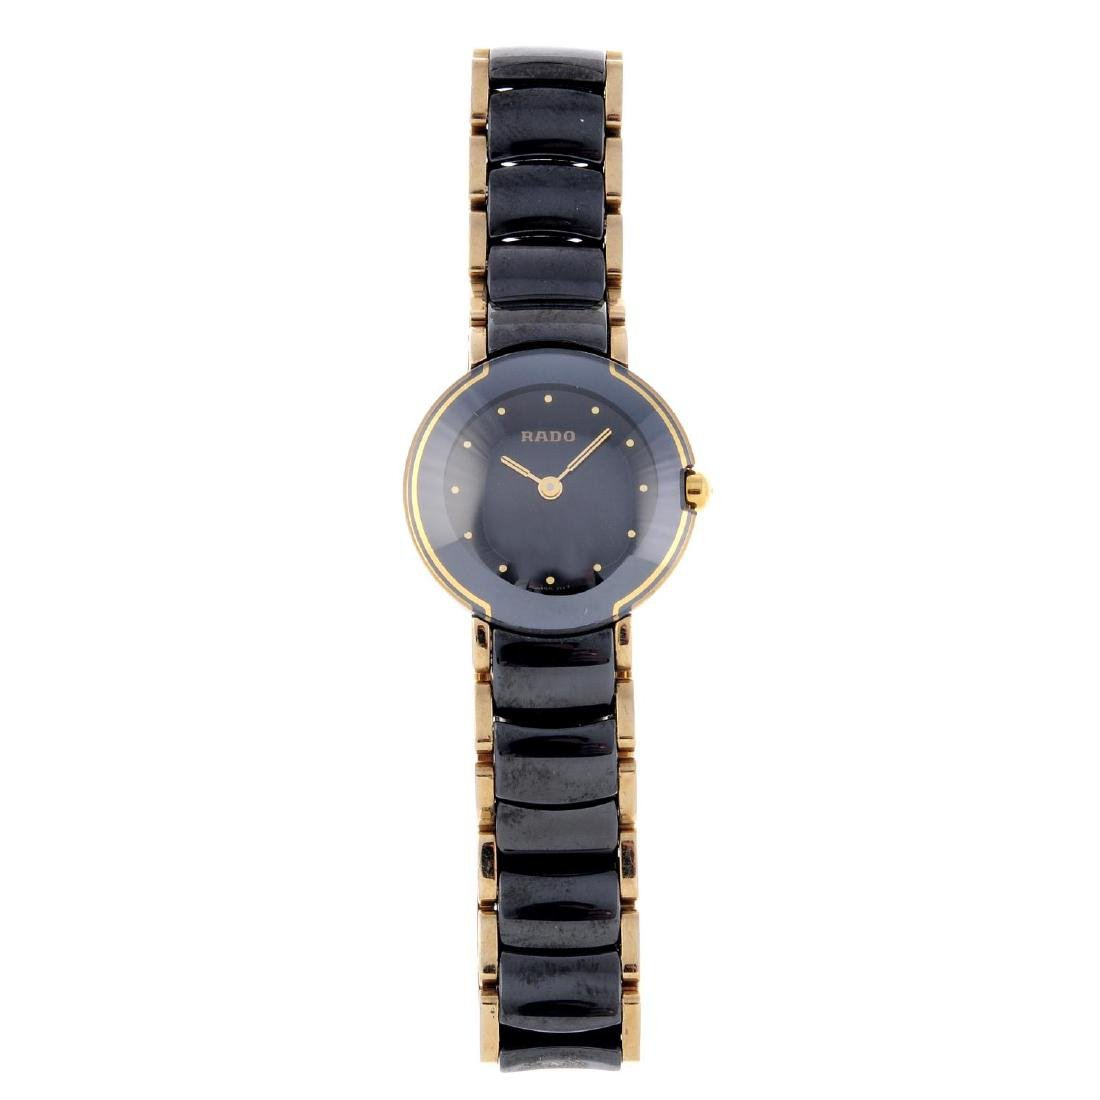 RADO - a lady's DiaStar bracelet watch. Stainless steel